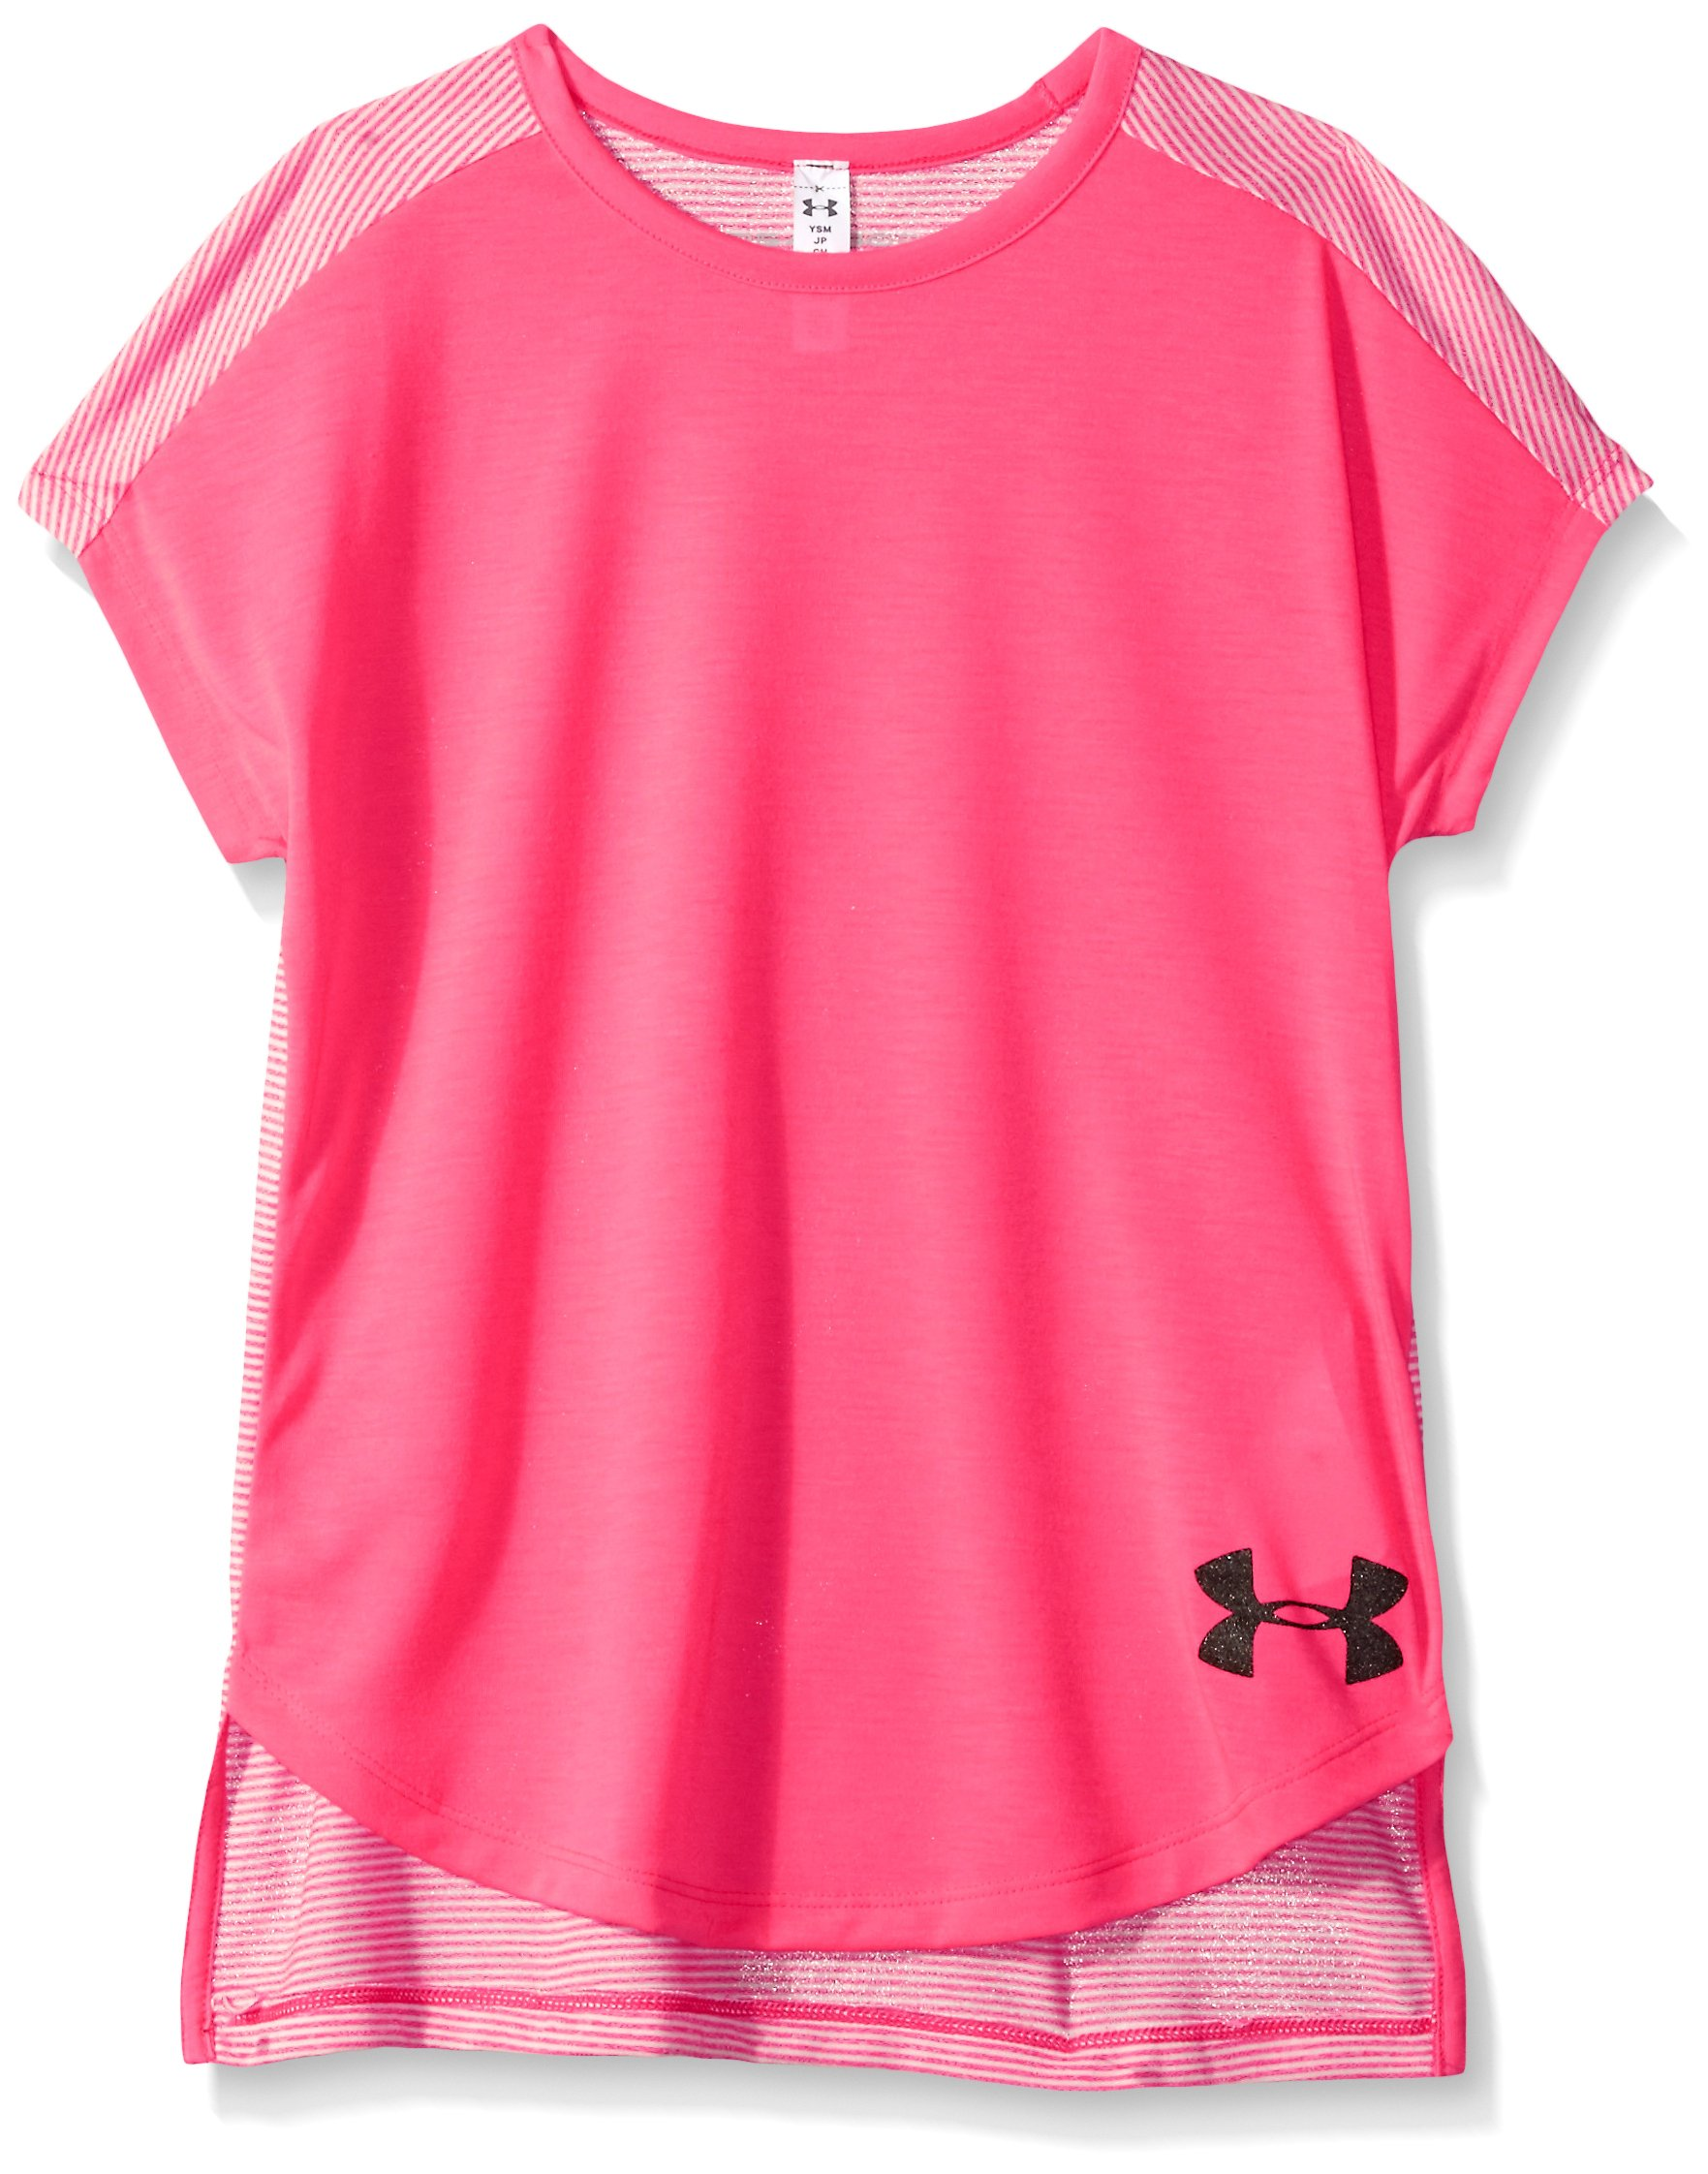 Under Armour Girls' Threadborne Play Up T-Shirt,Penta Pink /Black, Youth X-Small